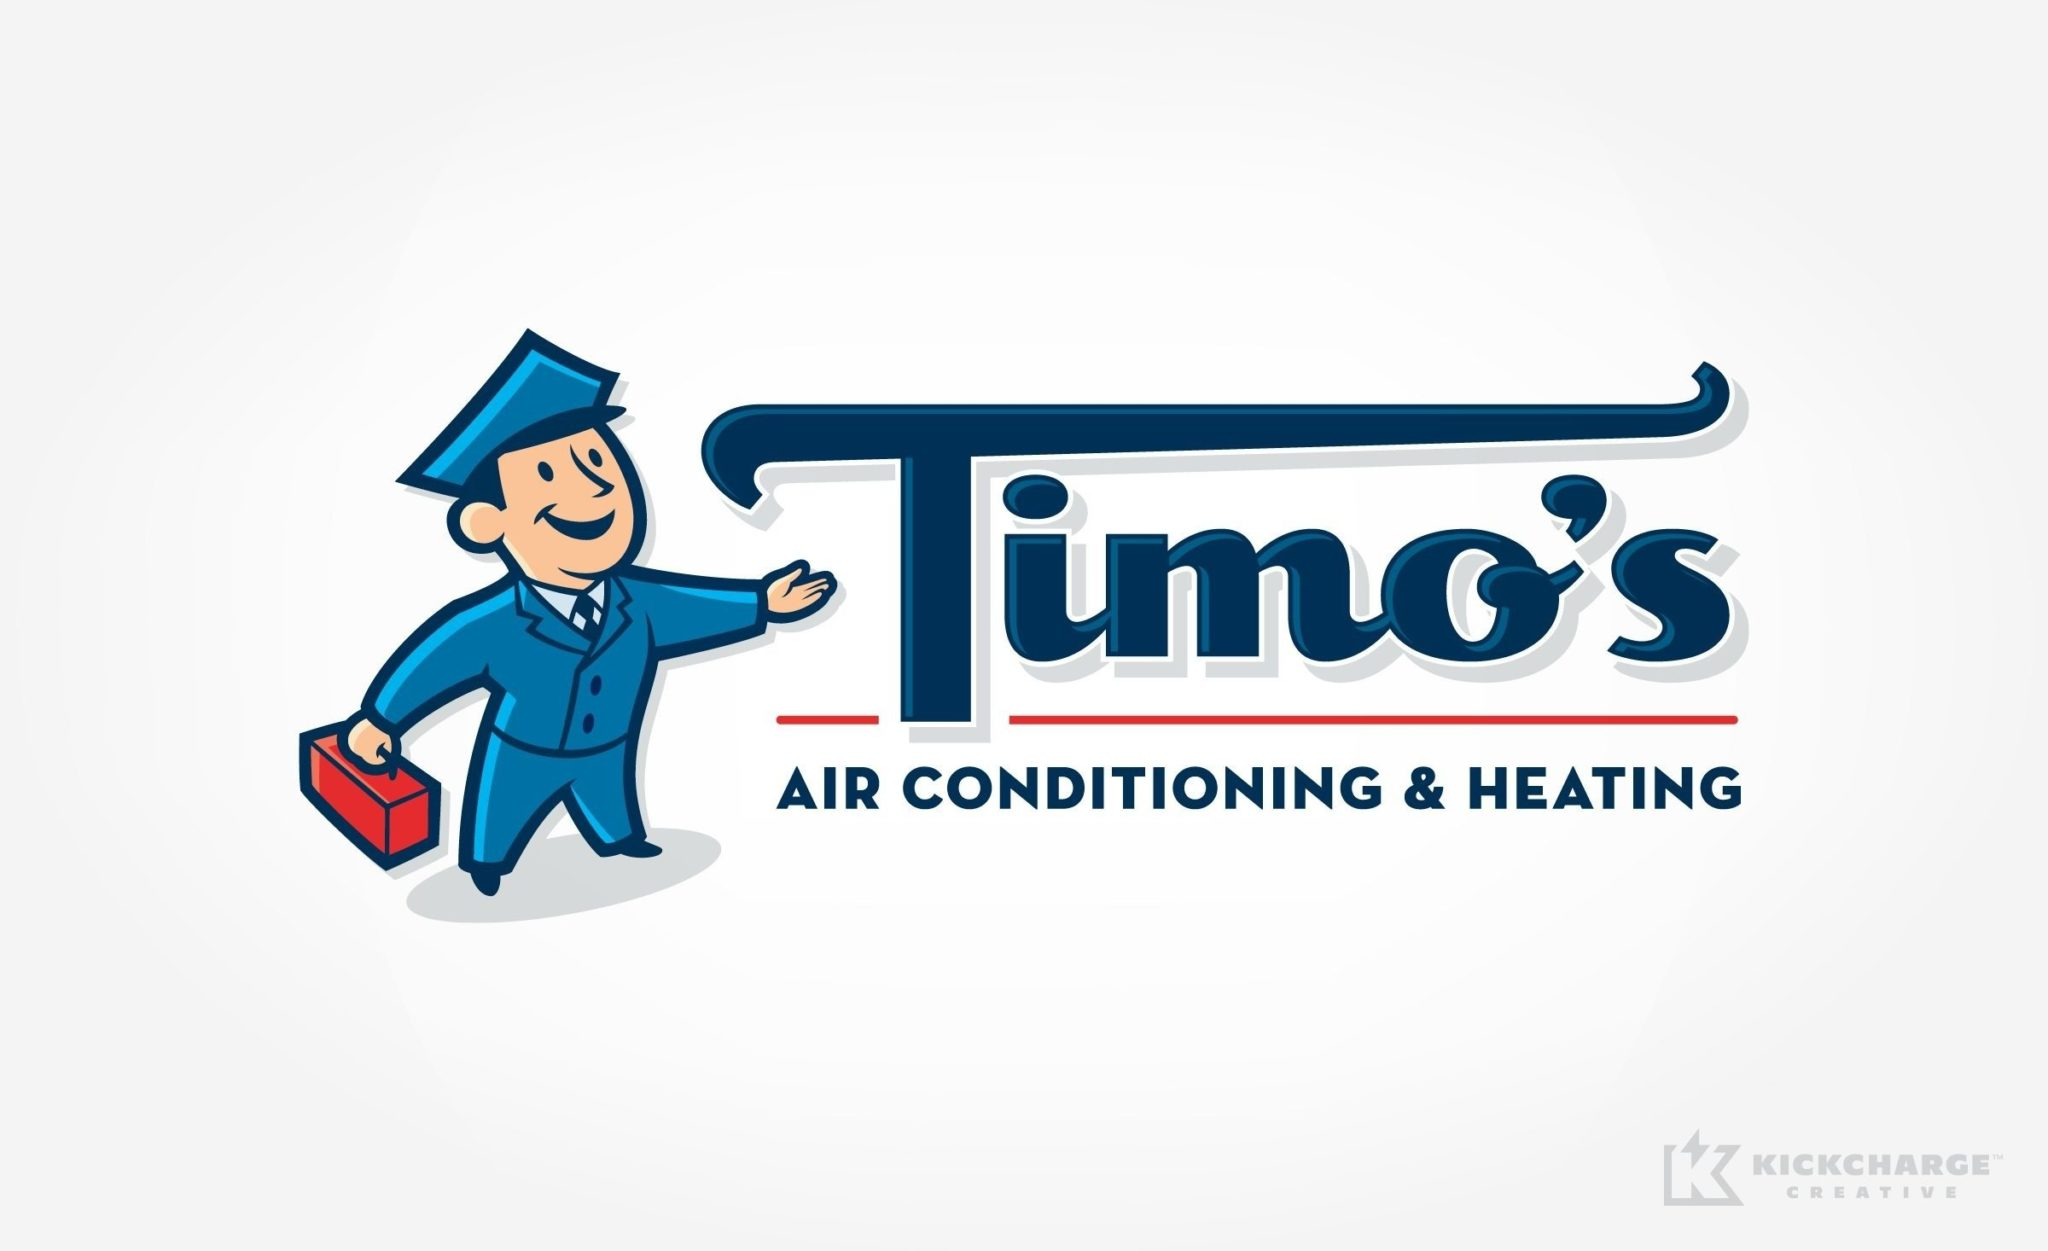 We designed this nostalgic retro logo design for an HVAC contractor in Palm Springs, CA.